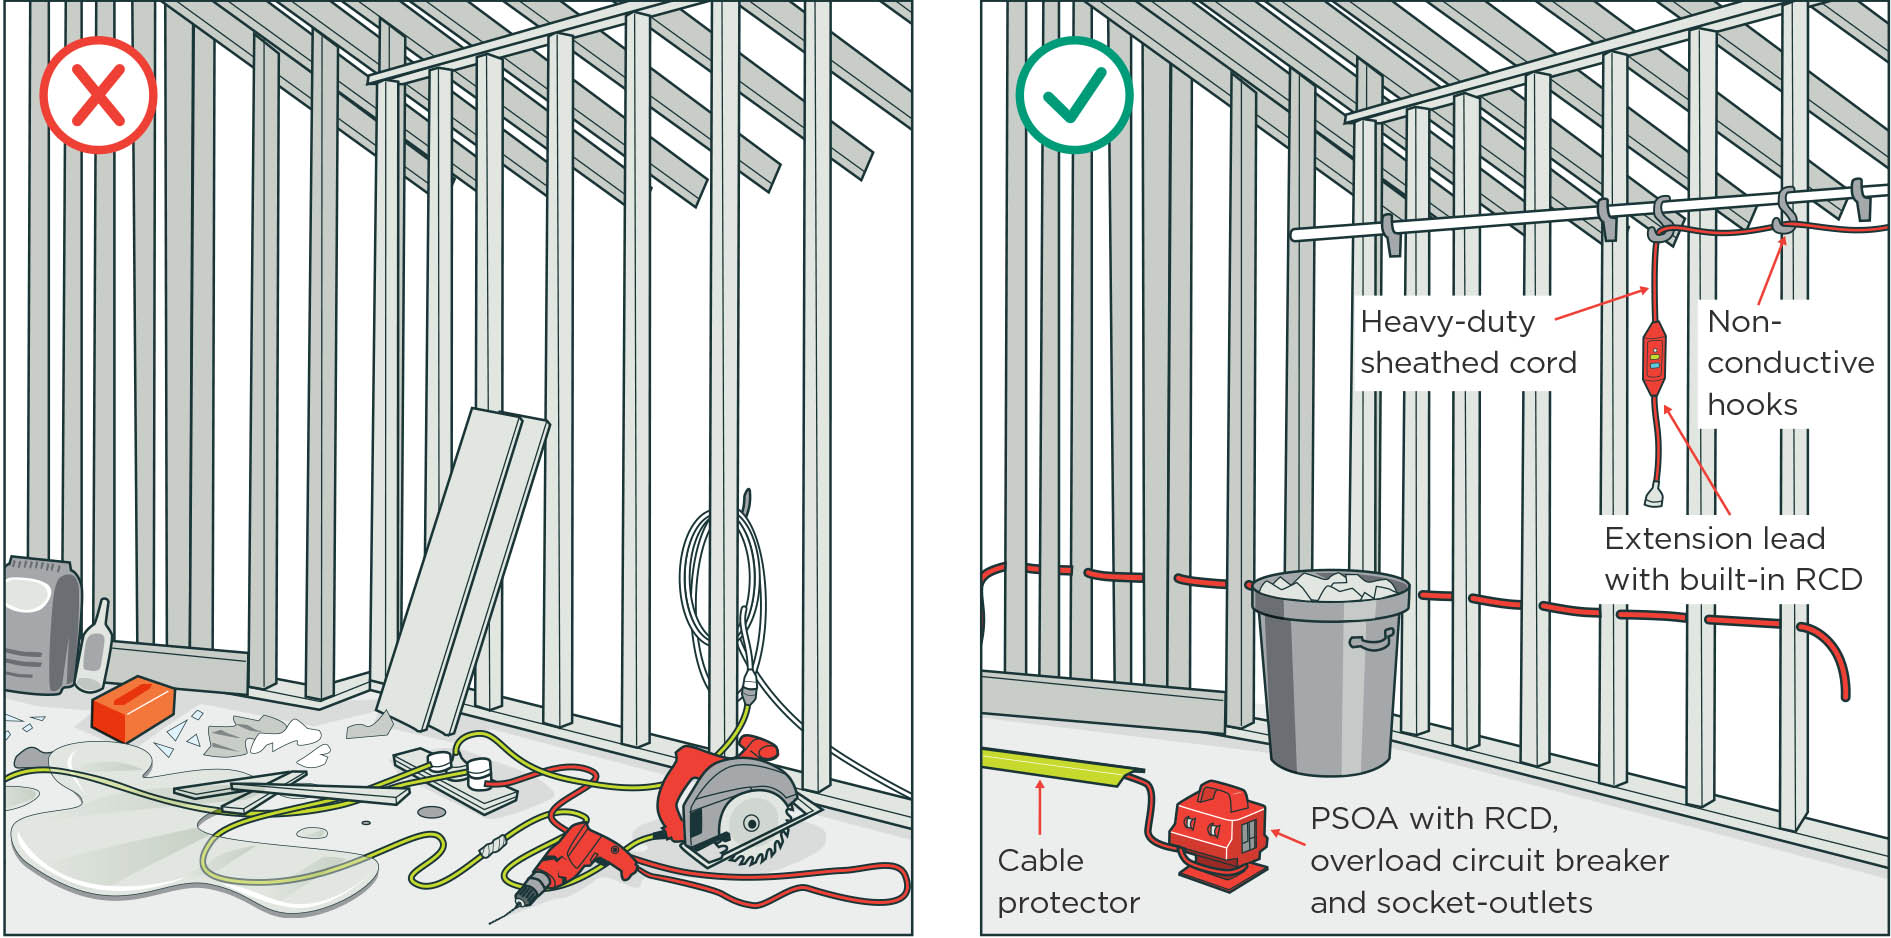 hight resolution of  image two construction sites being compared one has cords across the floor and